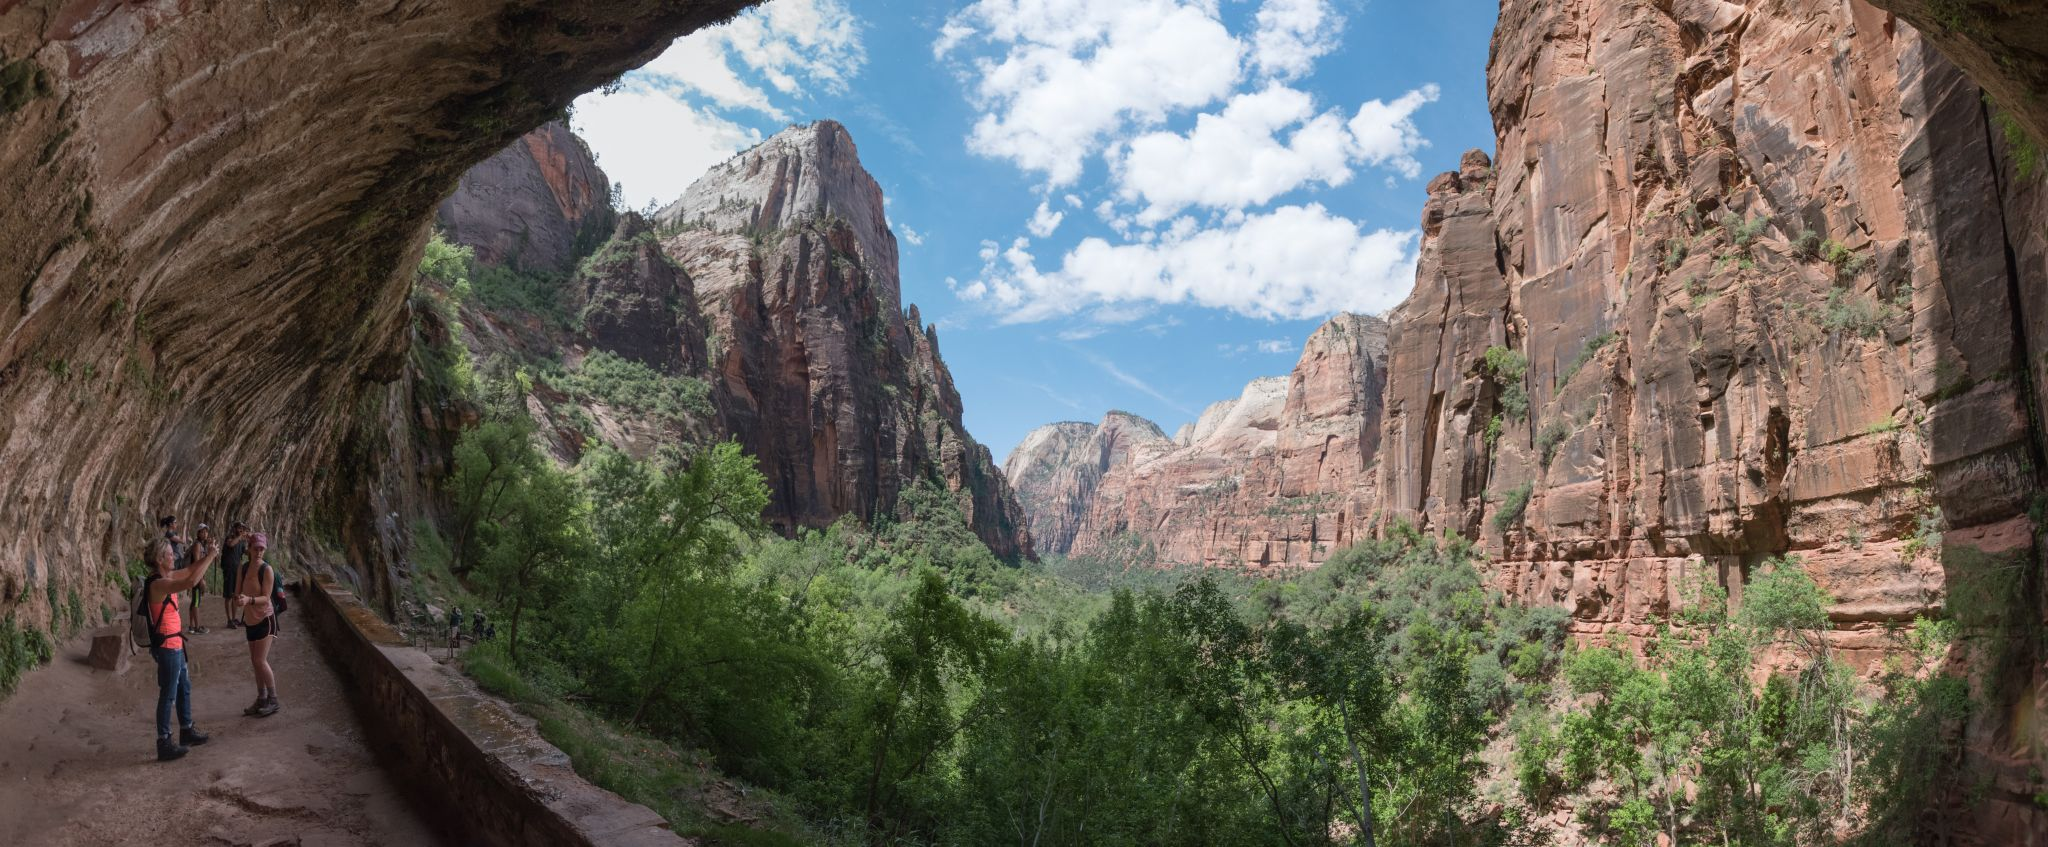 Zion Weeping Rock, USA